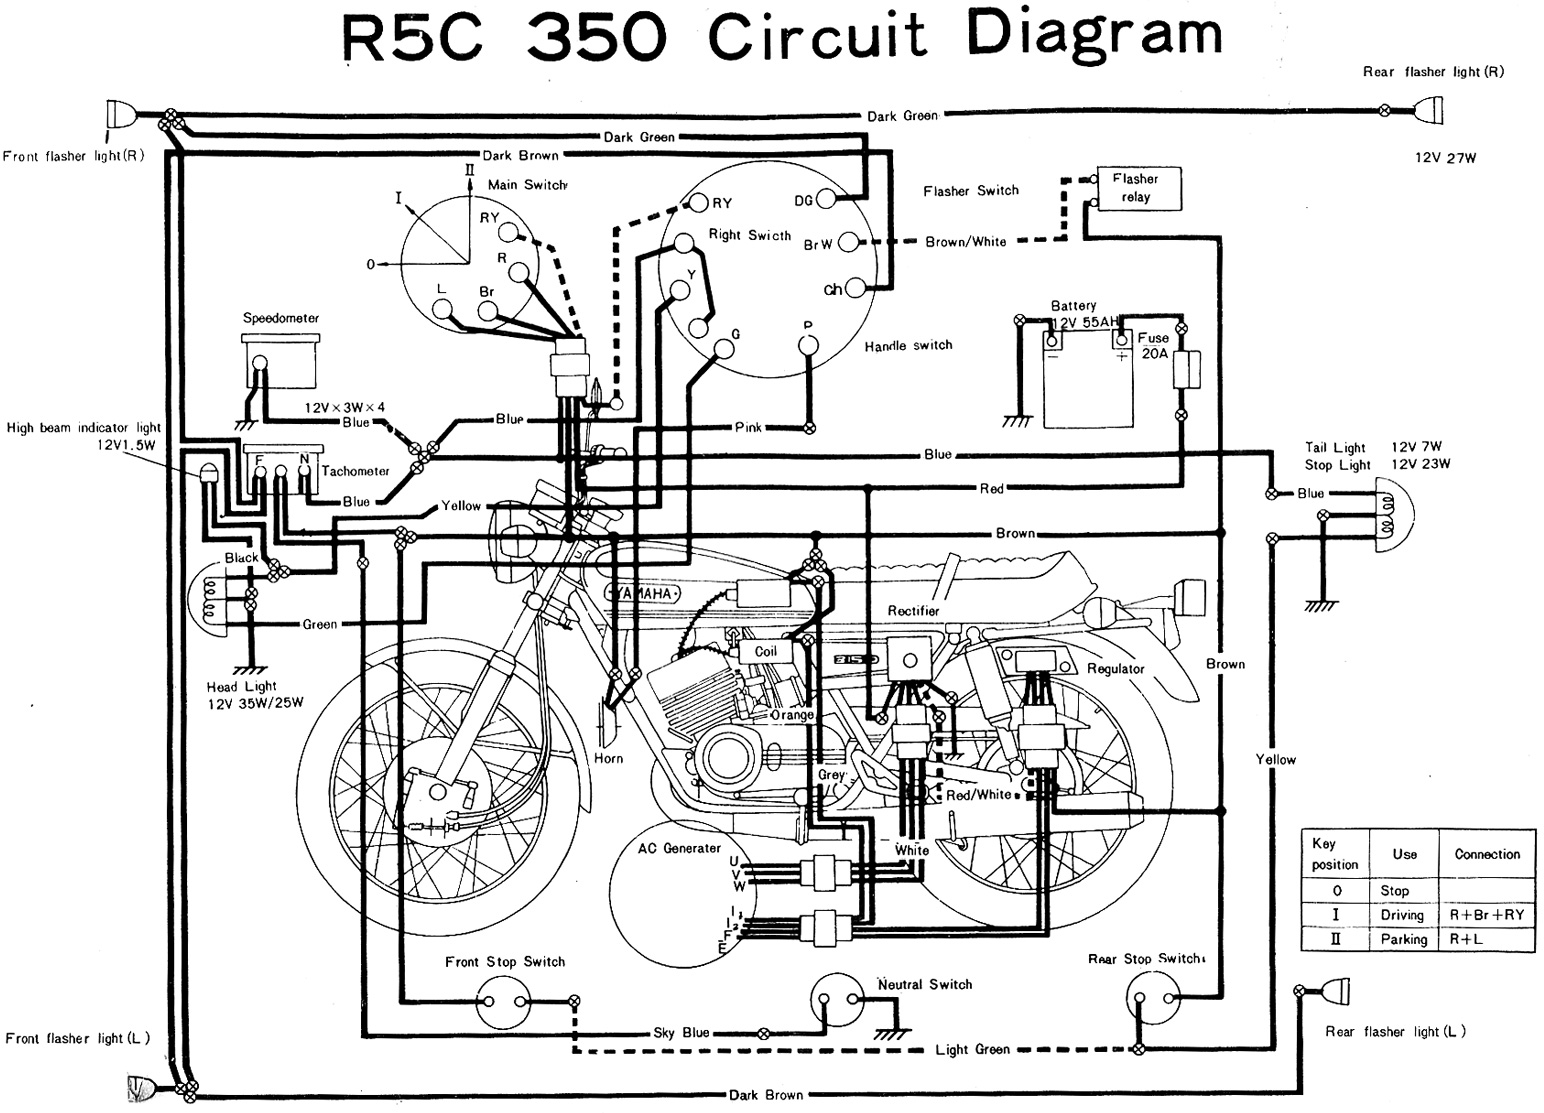 motorcycle wiring diagrams evan fell motorcycle works ninja 250 wiring diagram yamaha rd350 r5c wiring diagram